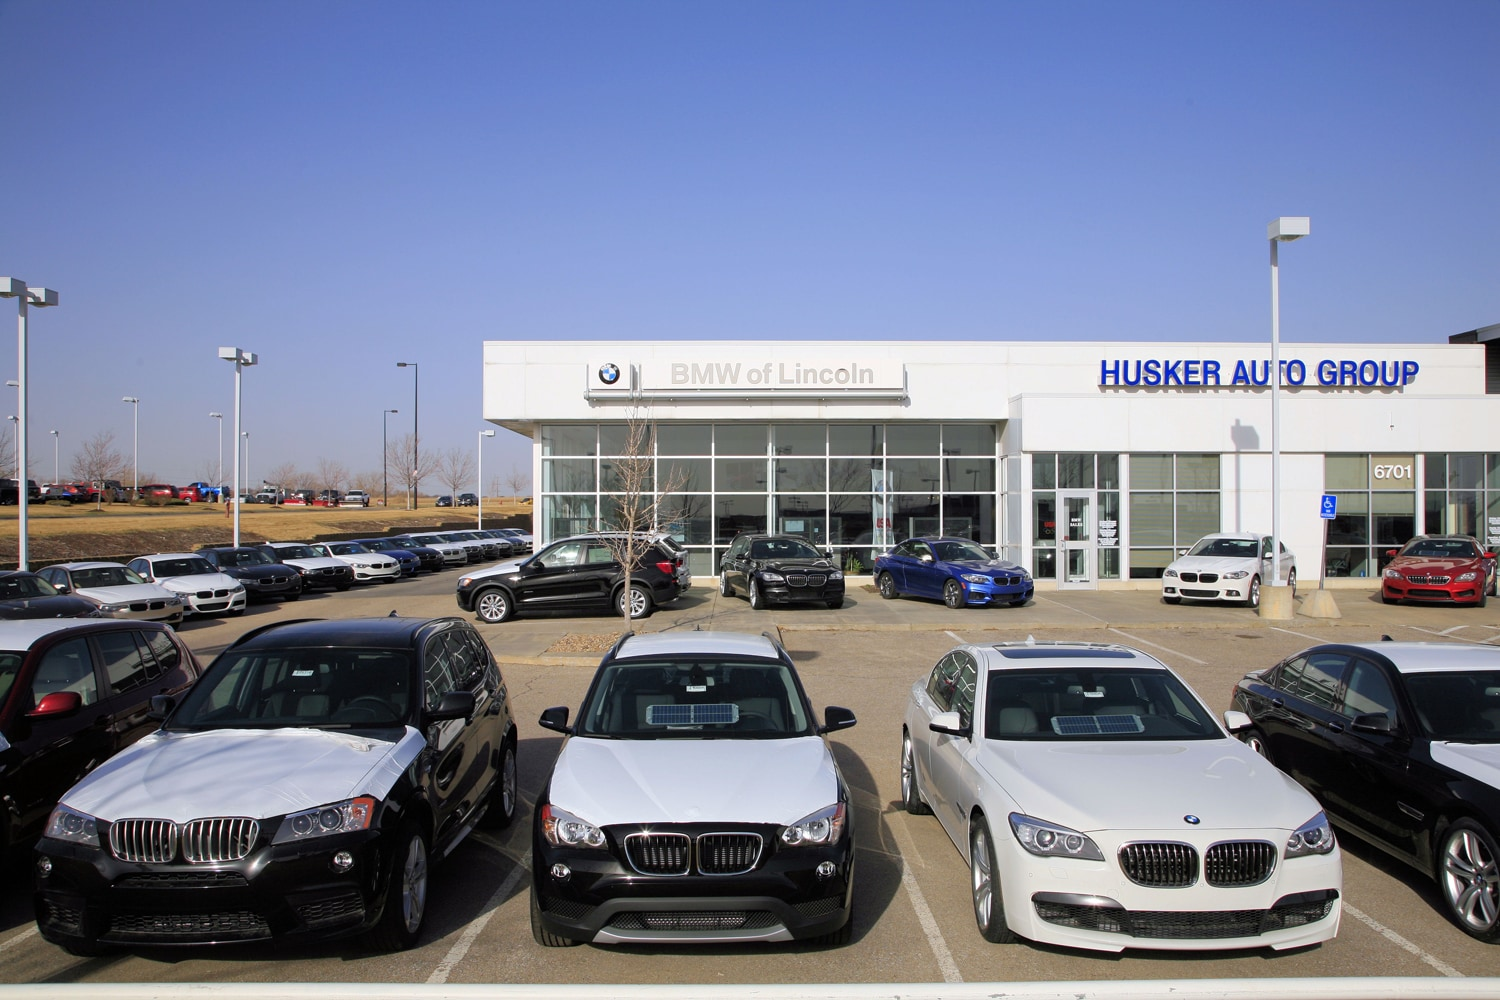 BMW Dealerships In Georgia >> BMW of Lincoln | BMW Dealership in Lincoln NE | Berkshire Hathaway Automotive